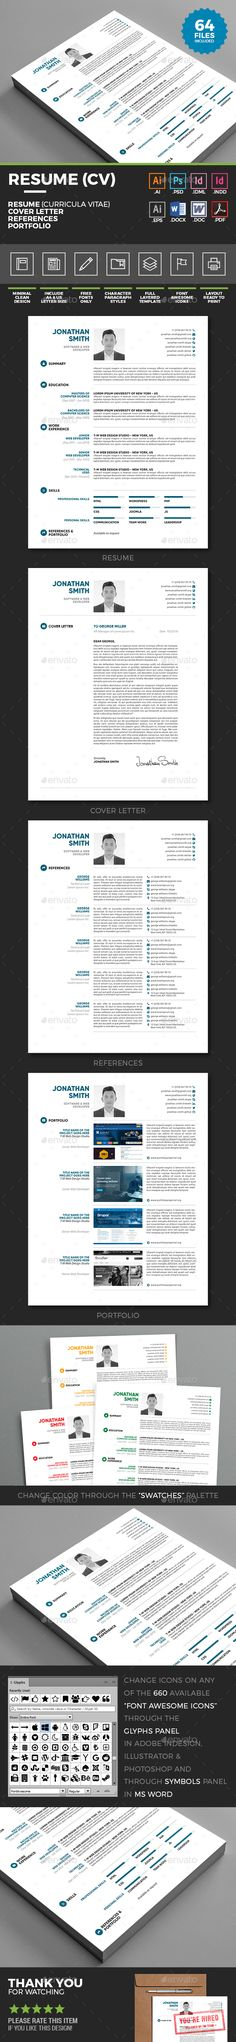 Resume Template Psd Vector Eps Ai Illustrator Ms Word  Resume